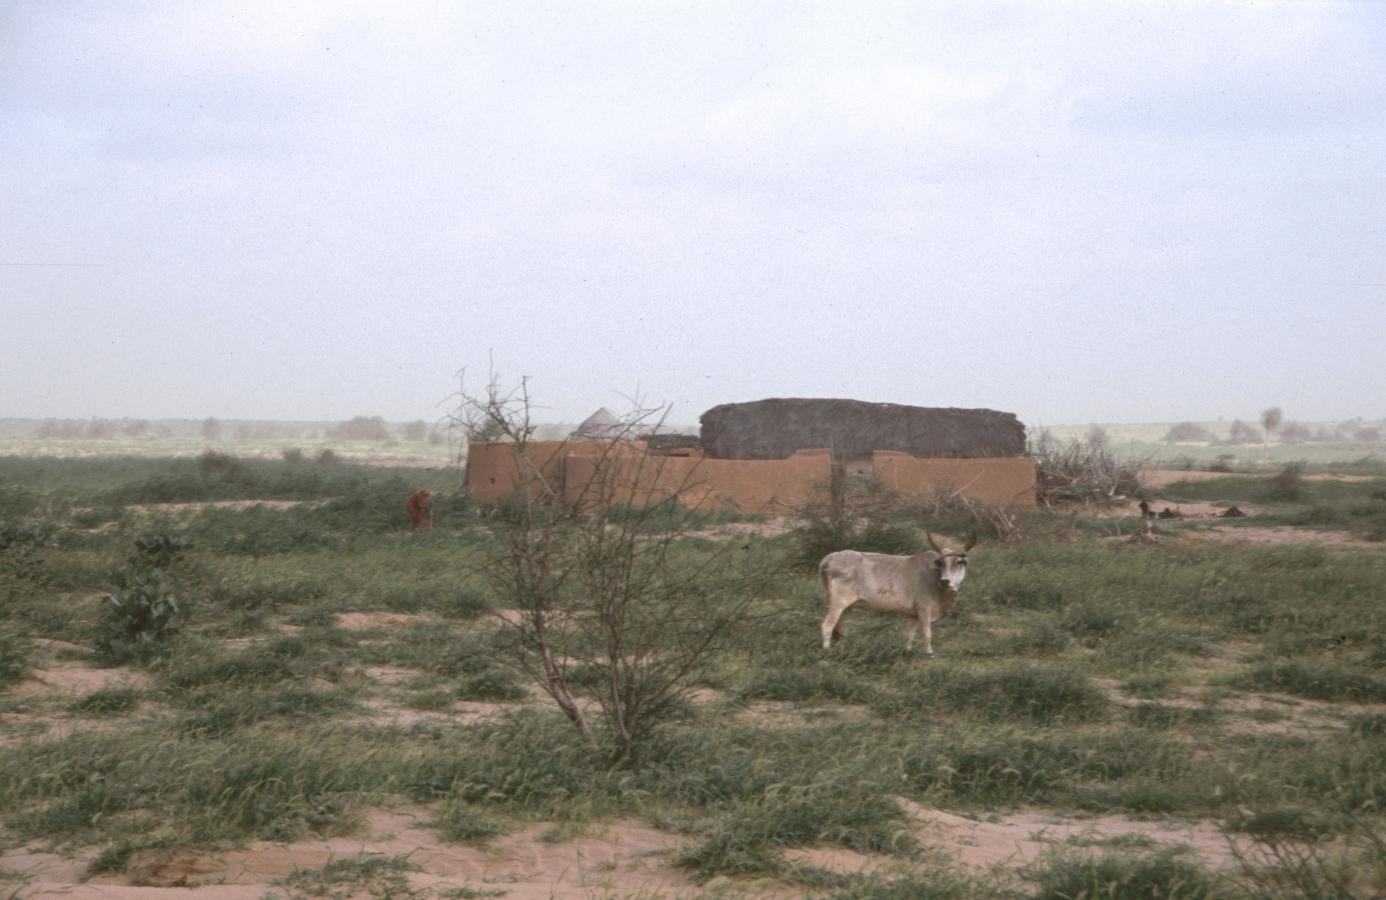 in-the-desert-around-jaisalmer-2003